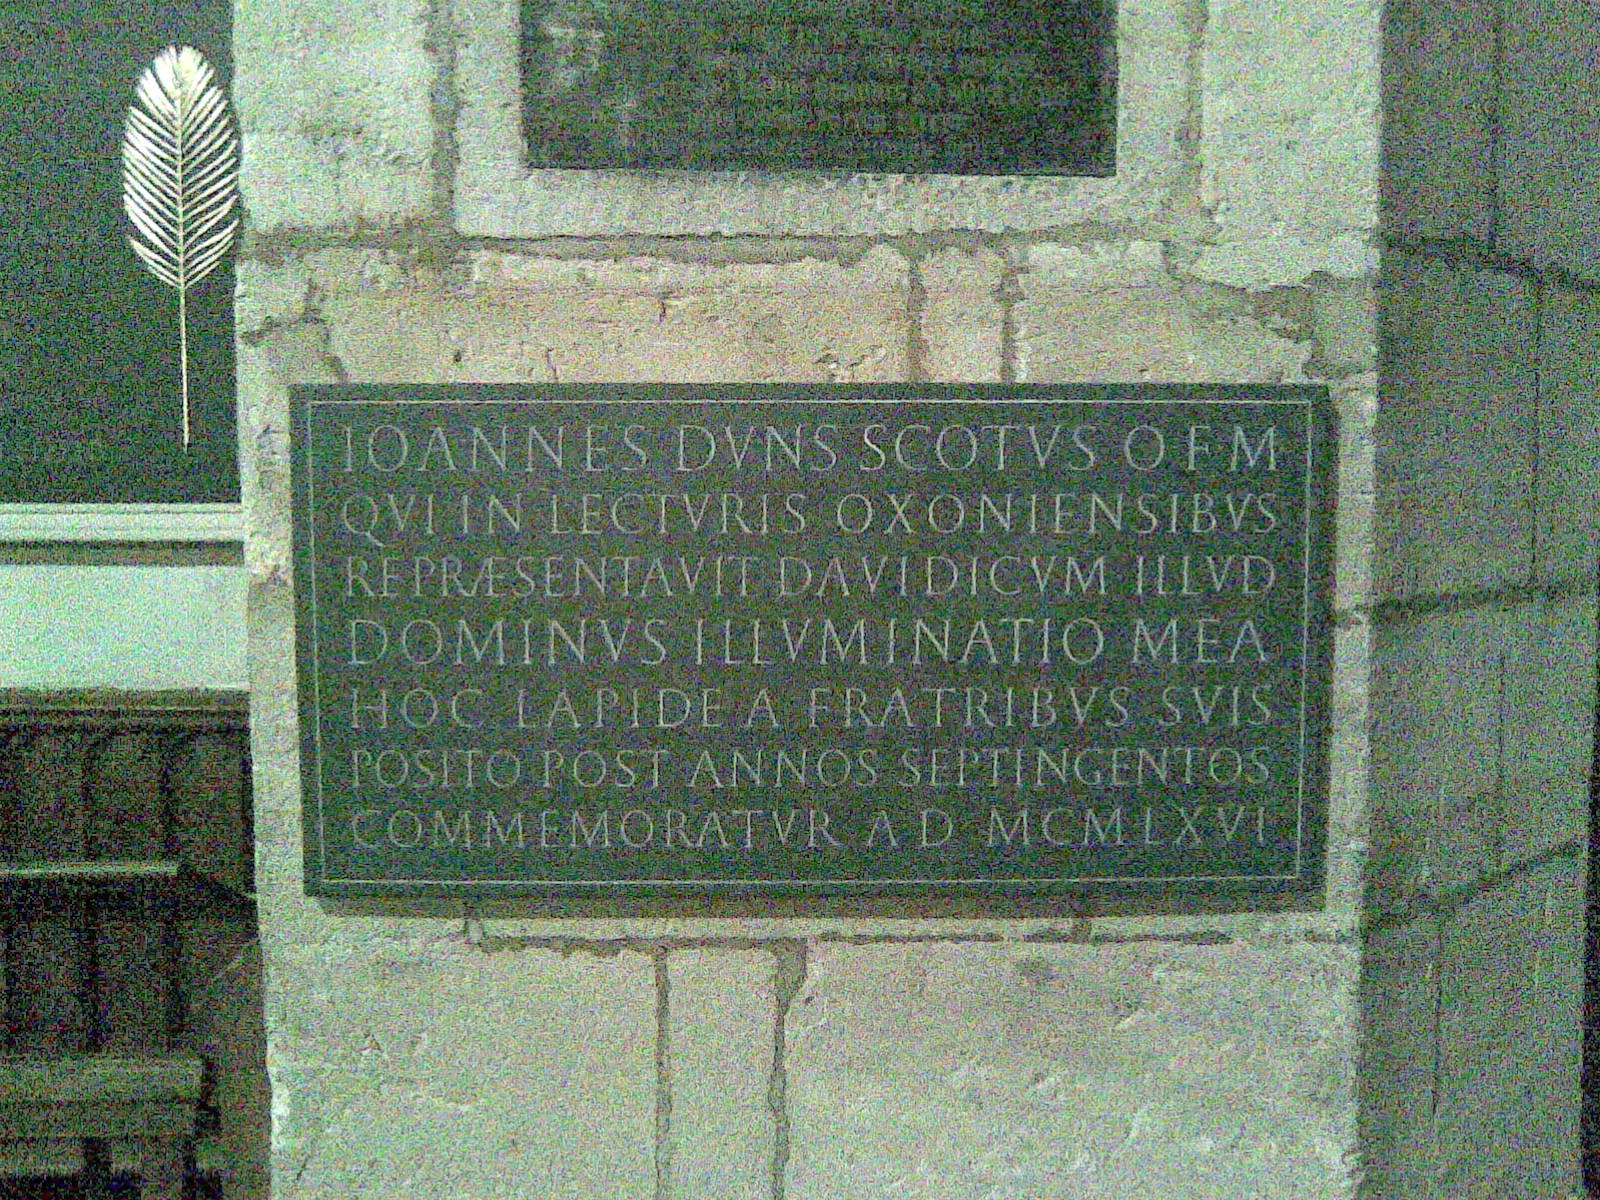 Duns_Scotus_plaque_University_Church_Oxford